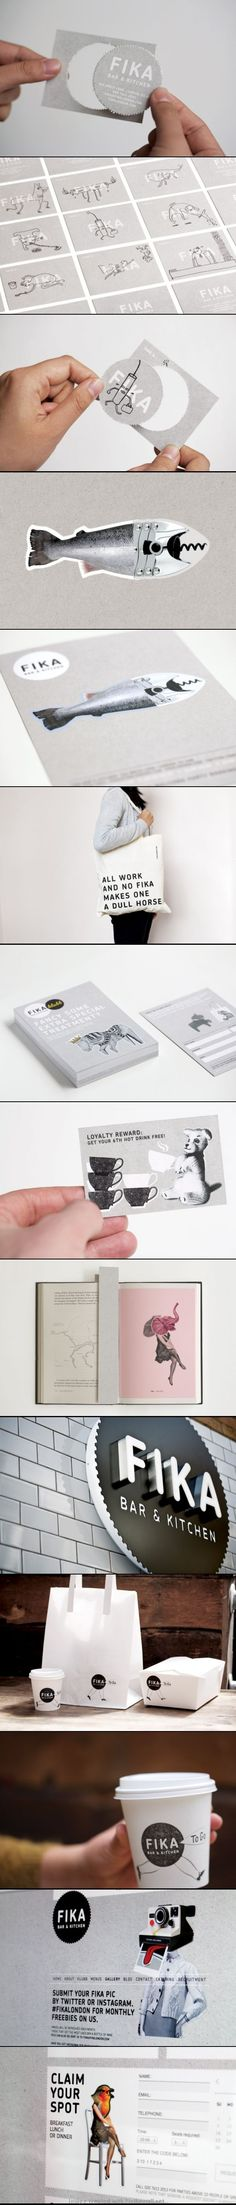 Fika bar & kitchen identity